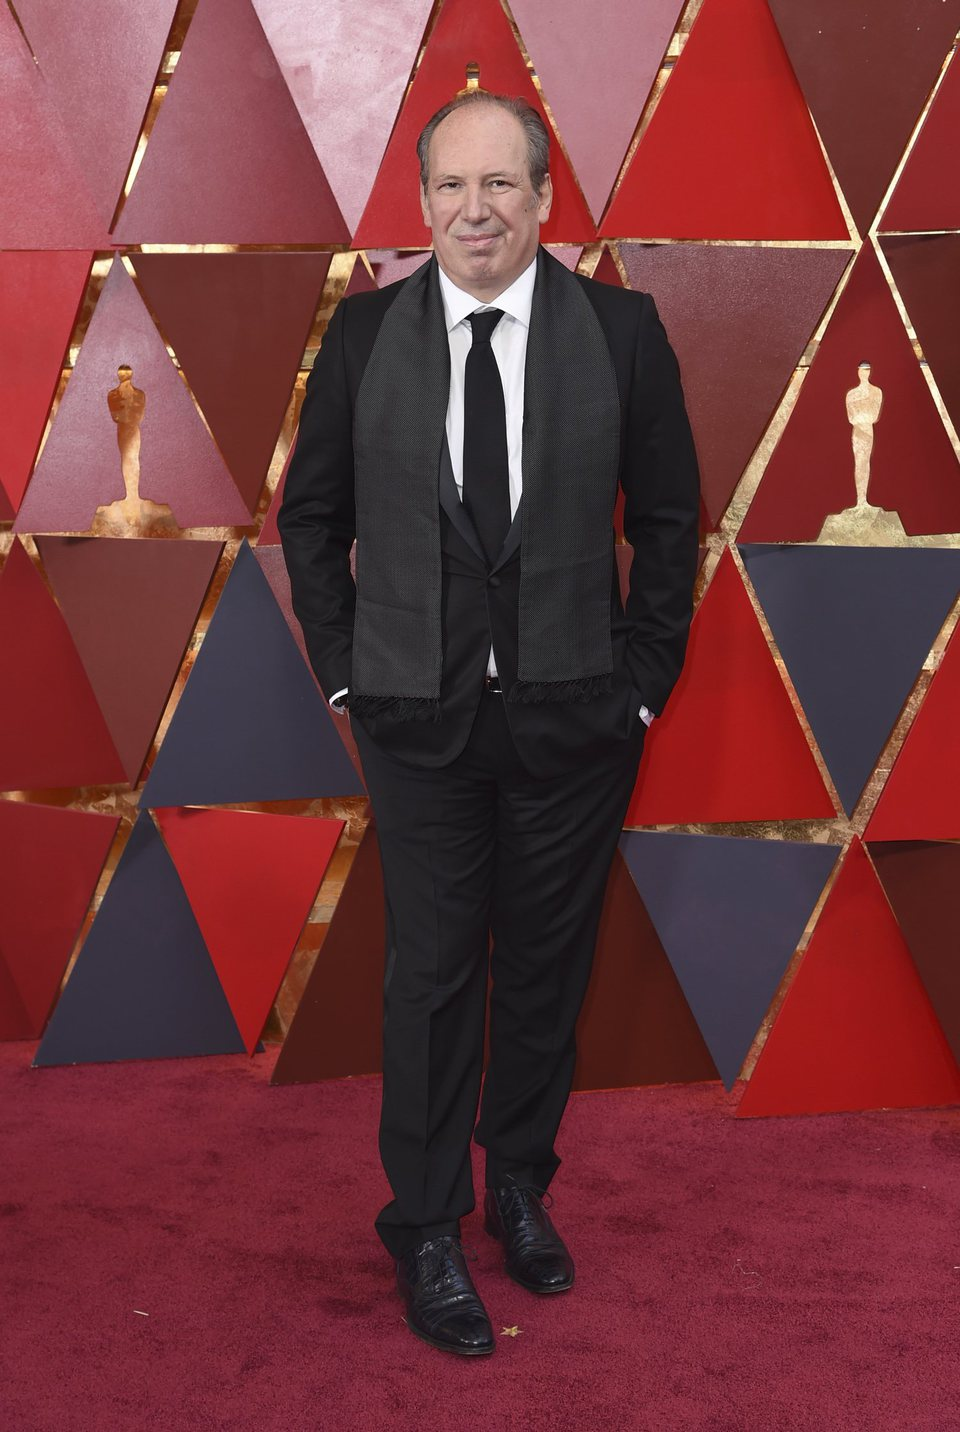 Hans Zimmer at the Oscars 2018 red carpet